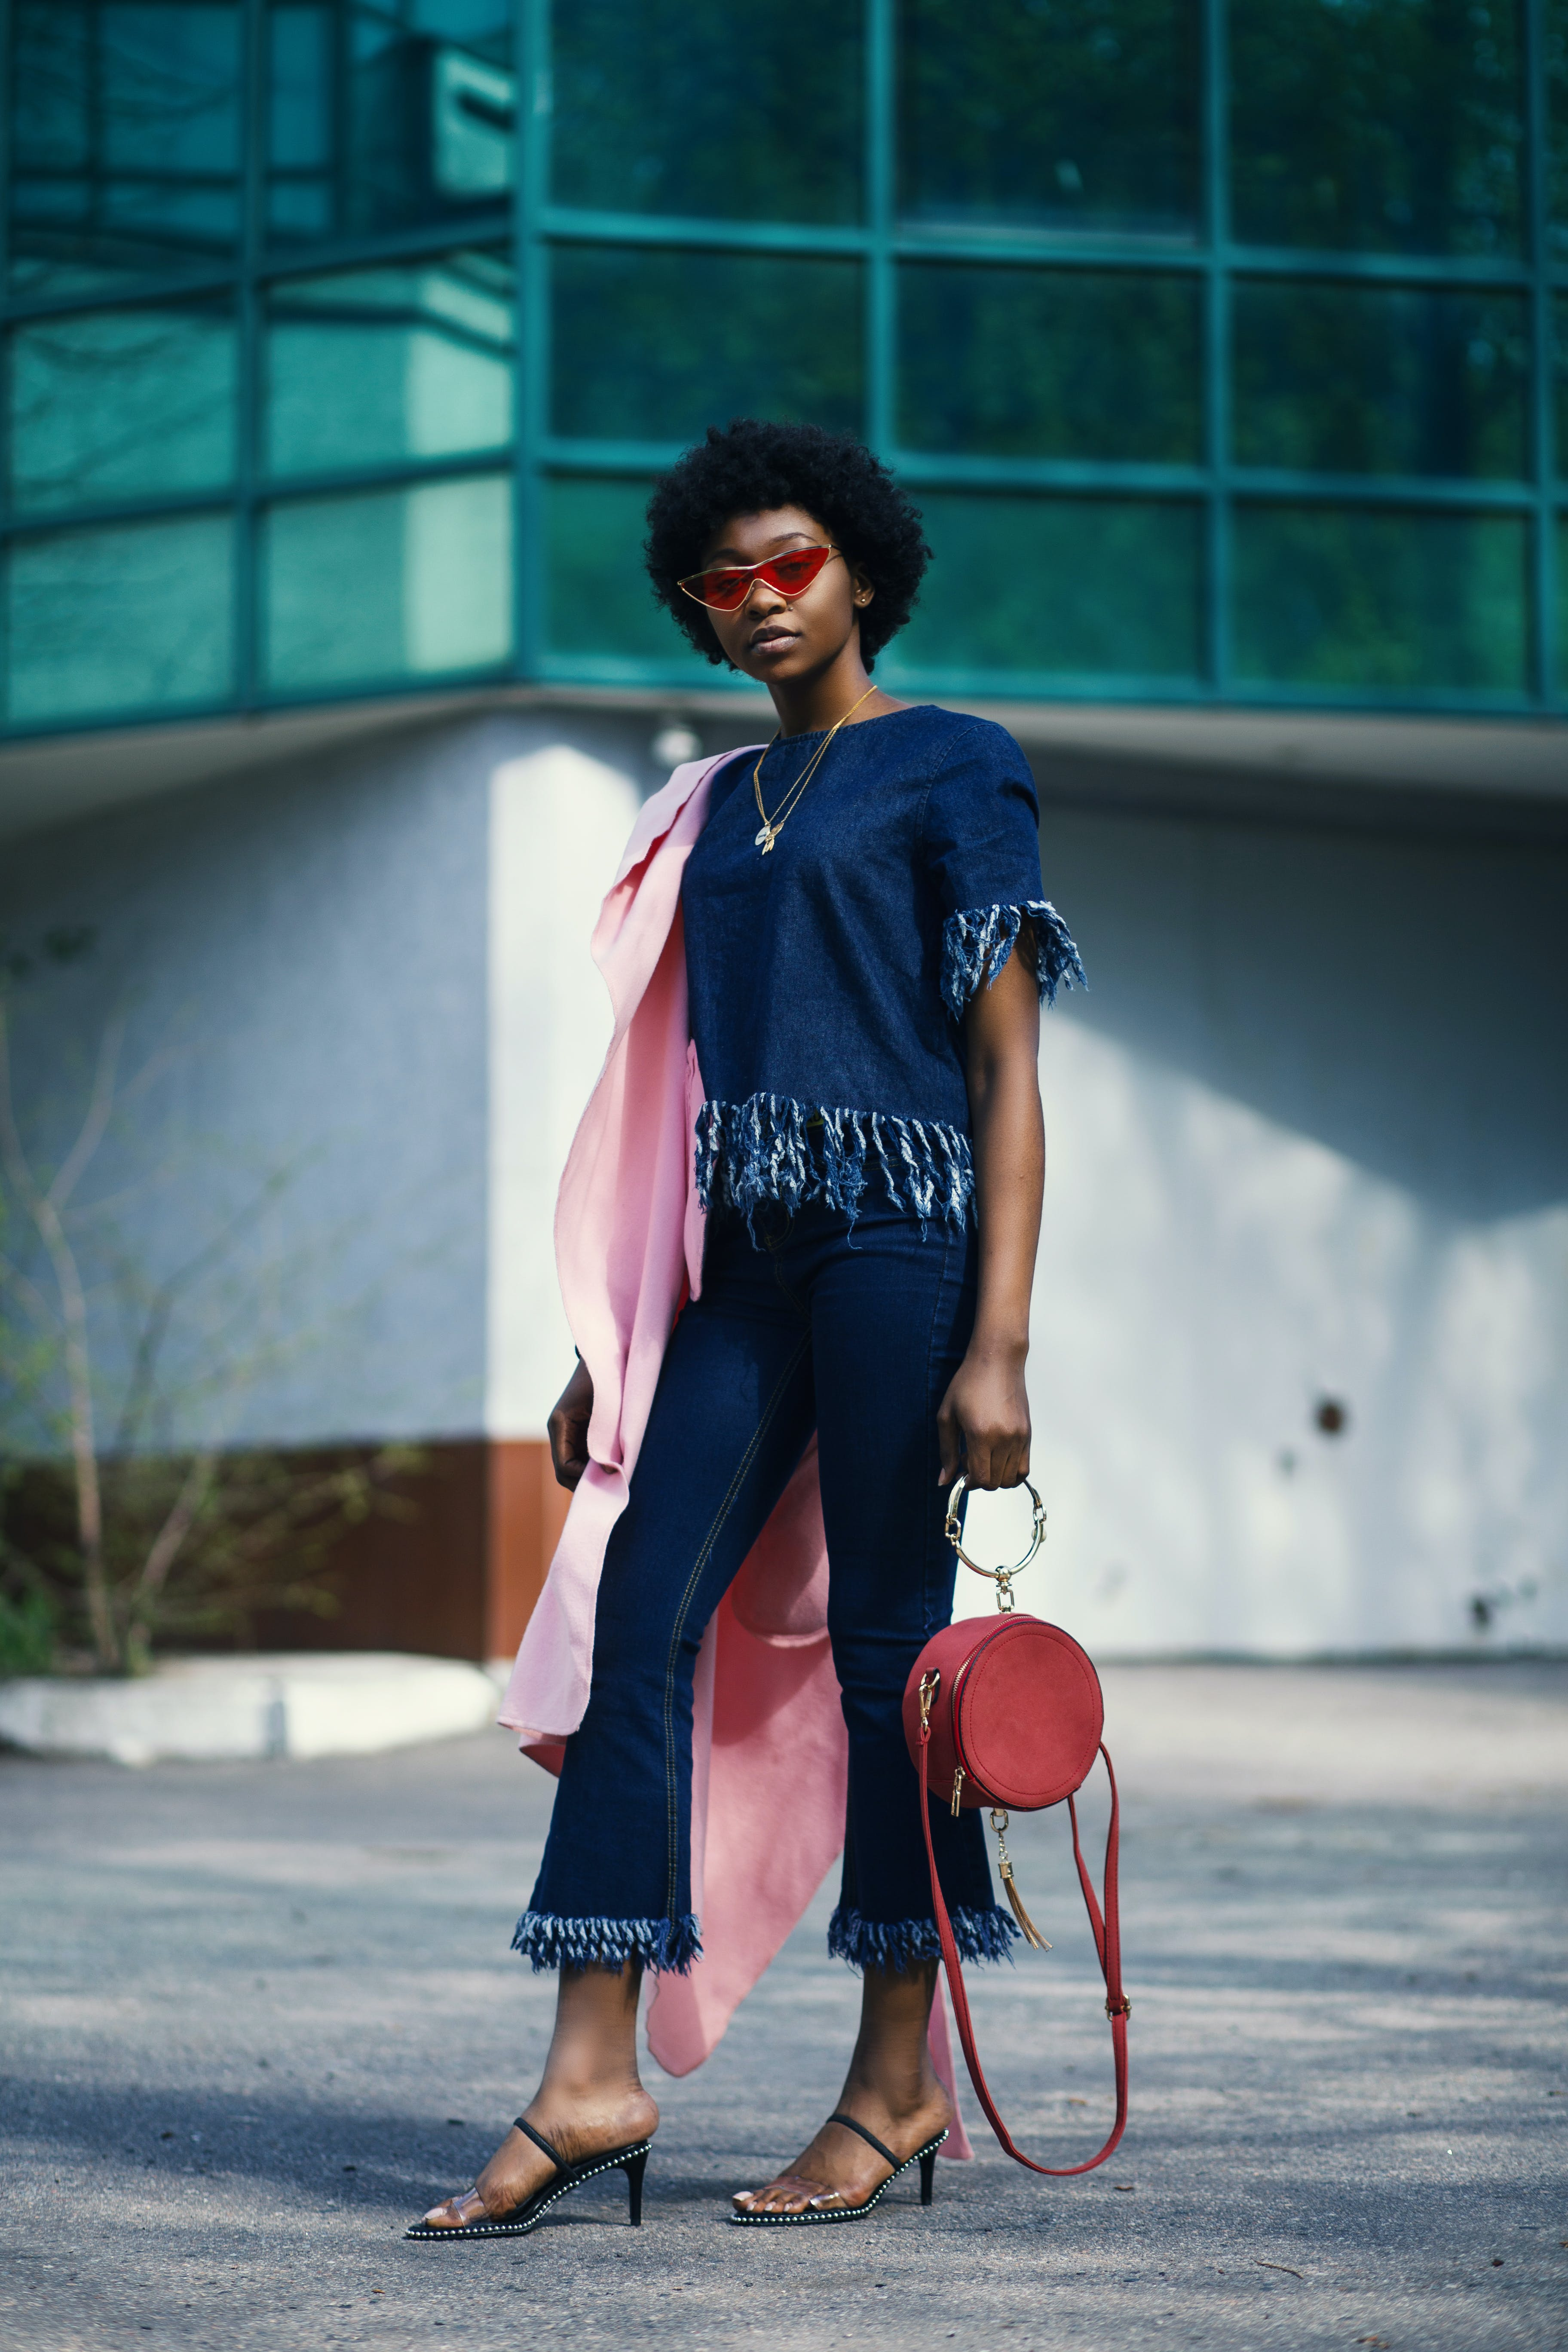 Shallow Focus Photography of Woman in Blue Clothes Holding Red Leather 2-way Handbag